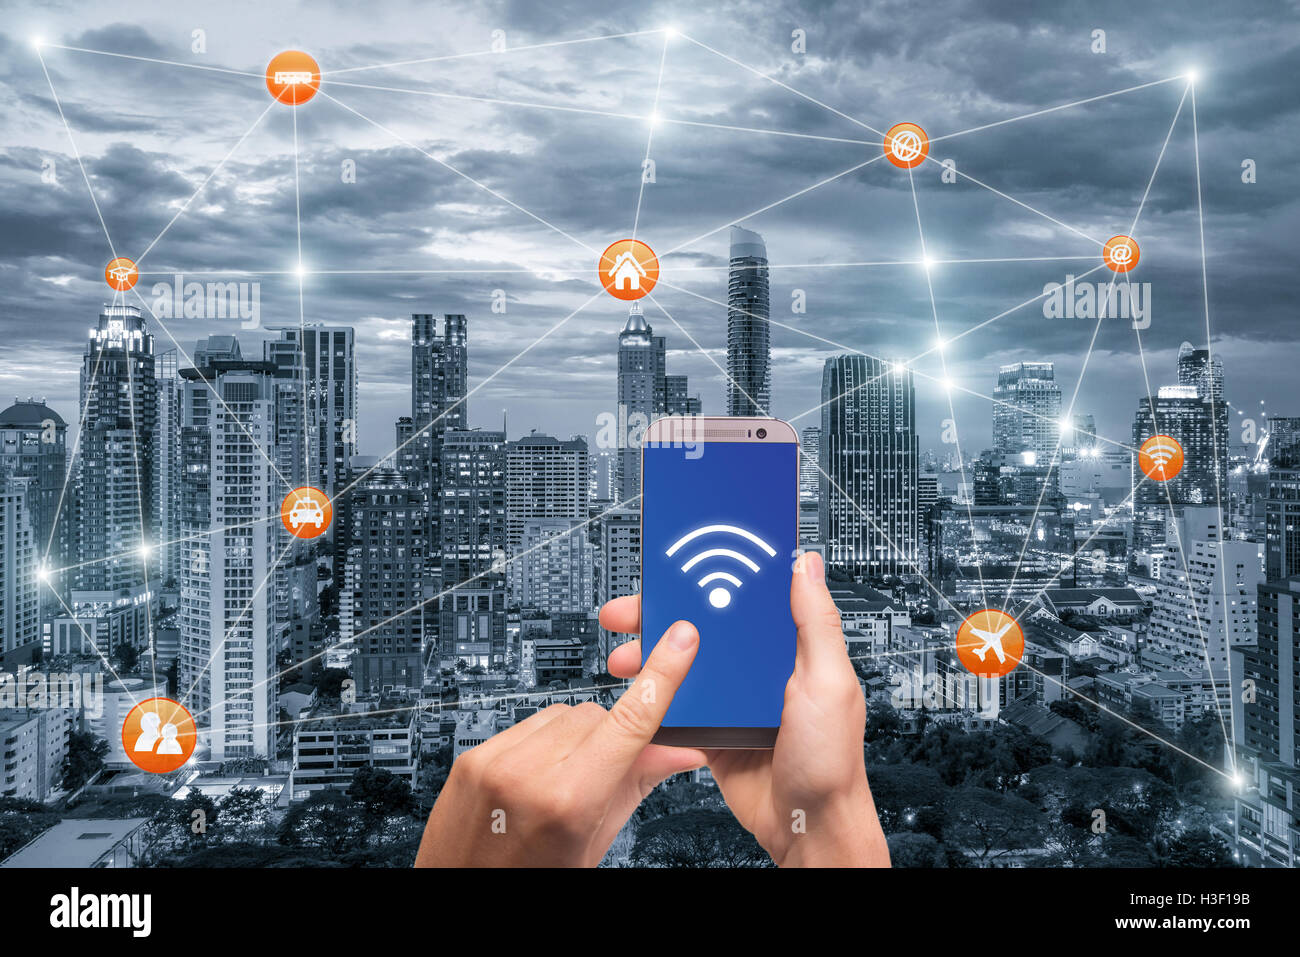 Hand holding smartphone with bangkok city scape and wifi network connection. Smart city network connection concept - Stock Image